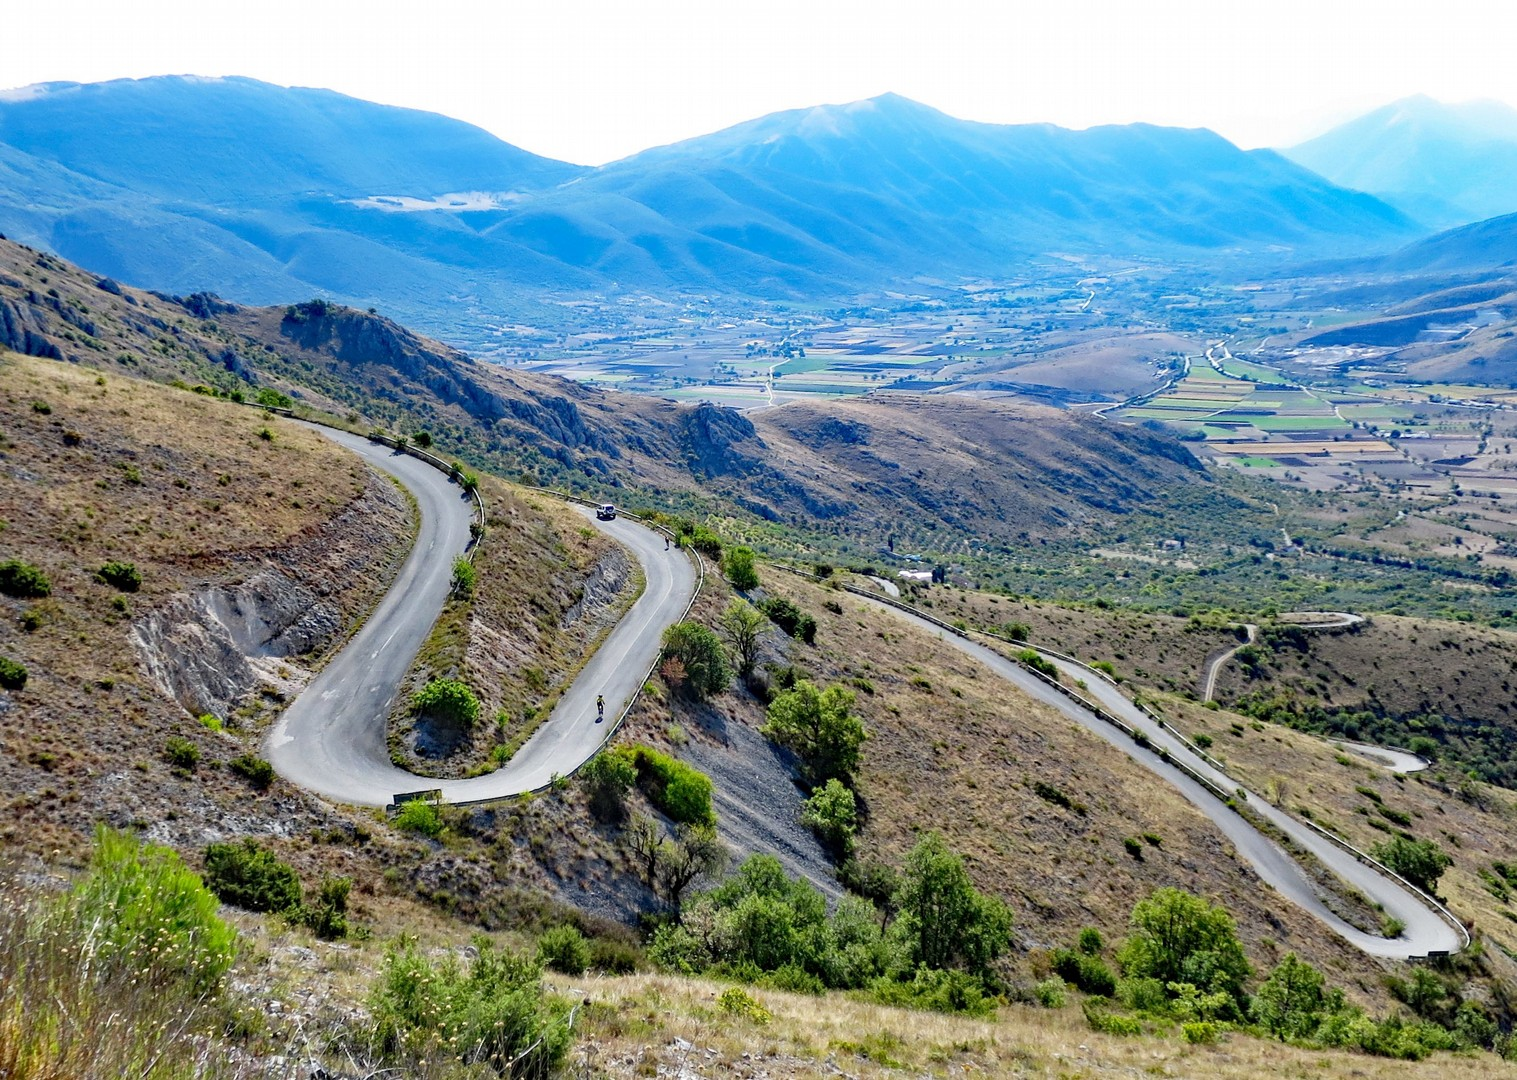 montepulcino-dabruzzo-guided-road-cycling-holiday-italy-abruzzo-appennini-dabruzzo.jpg - Italy - Abruzzo - Appennini d'Abruzzo - Guided Road Cycling Holiday - Road Cycling